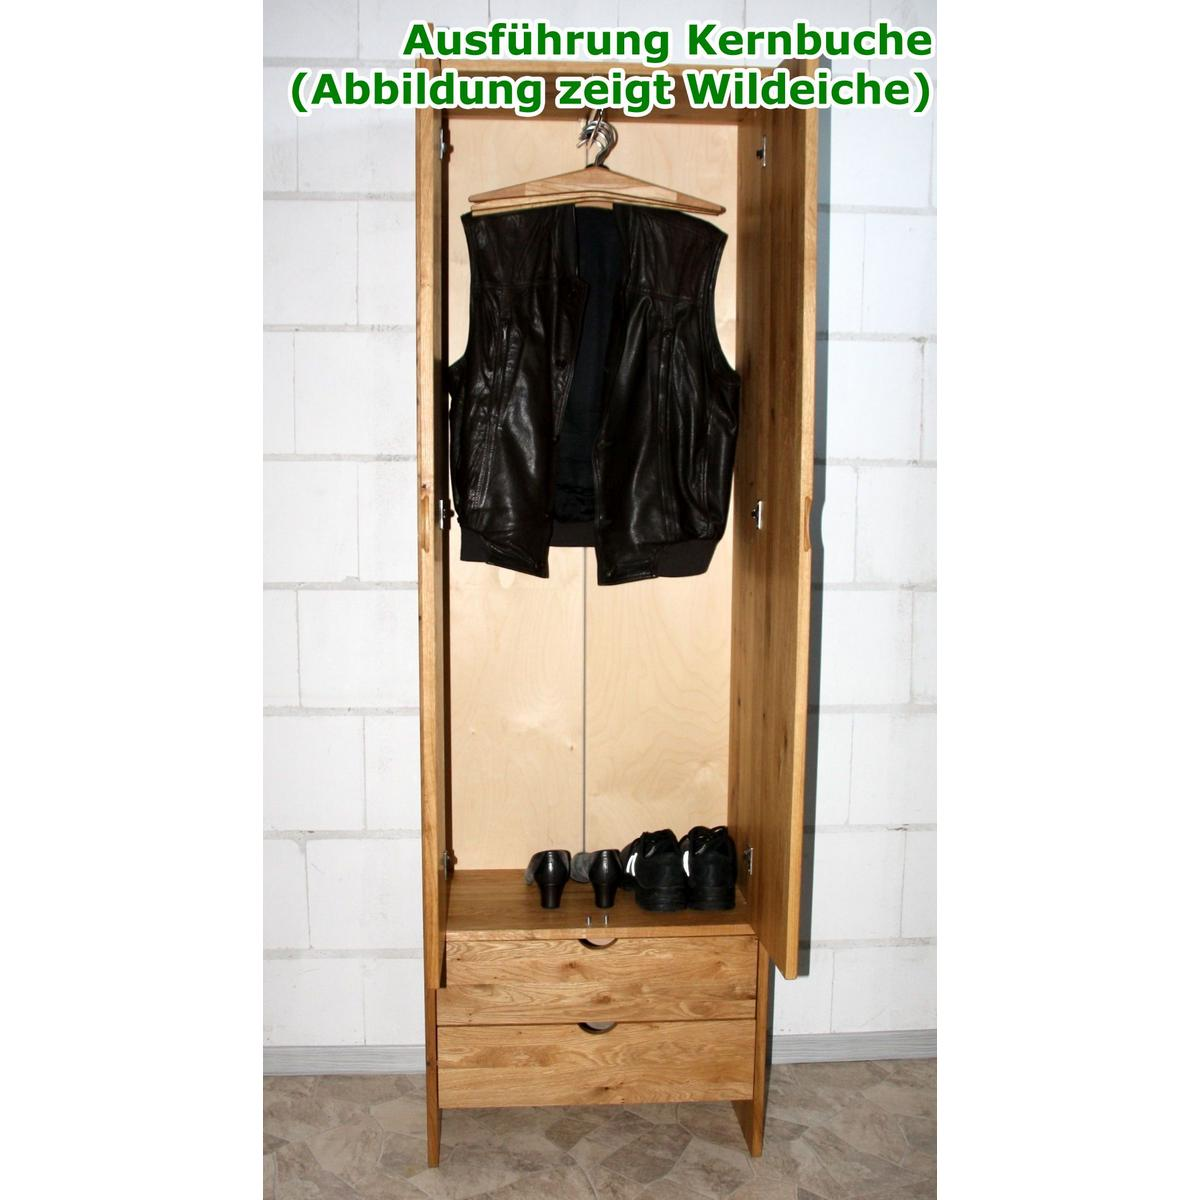 dielenschrank flurschrank schmal holz kernbuche natur. Black Bedroom Furniture Sets. Home Design Ideas